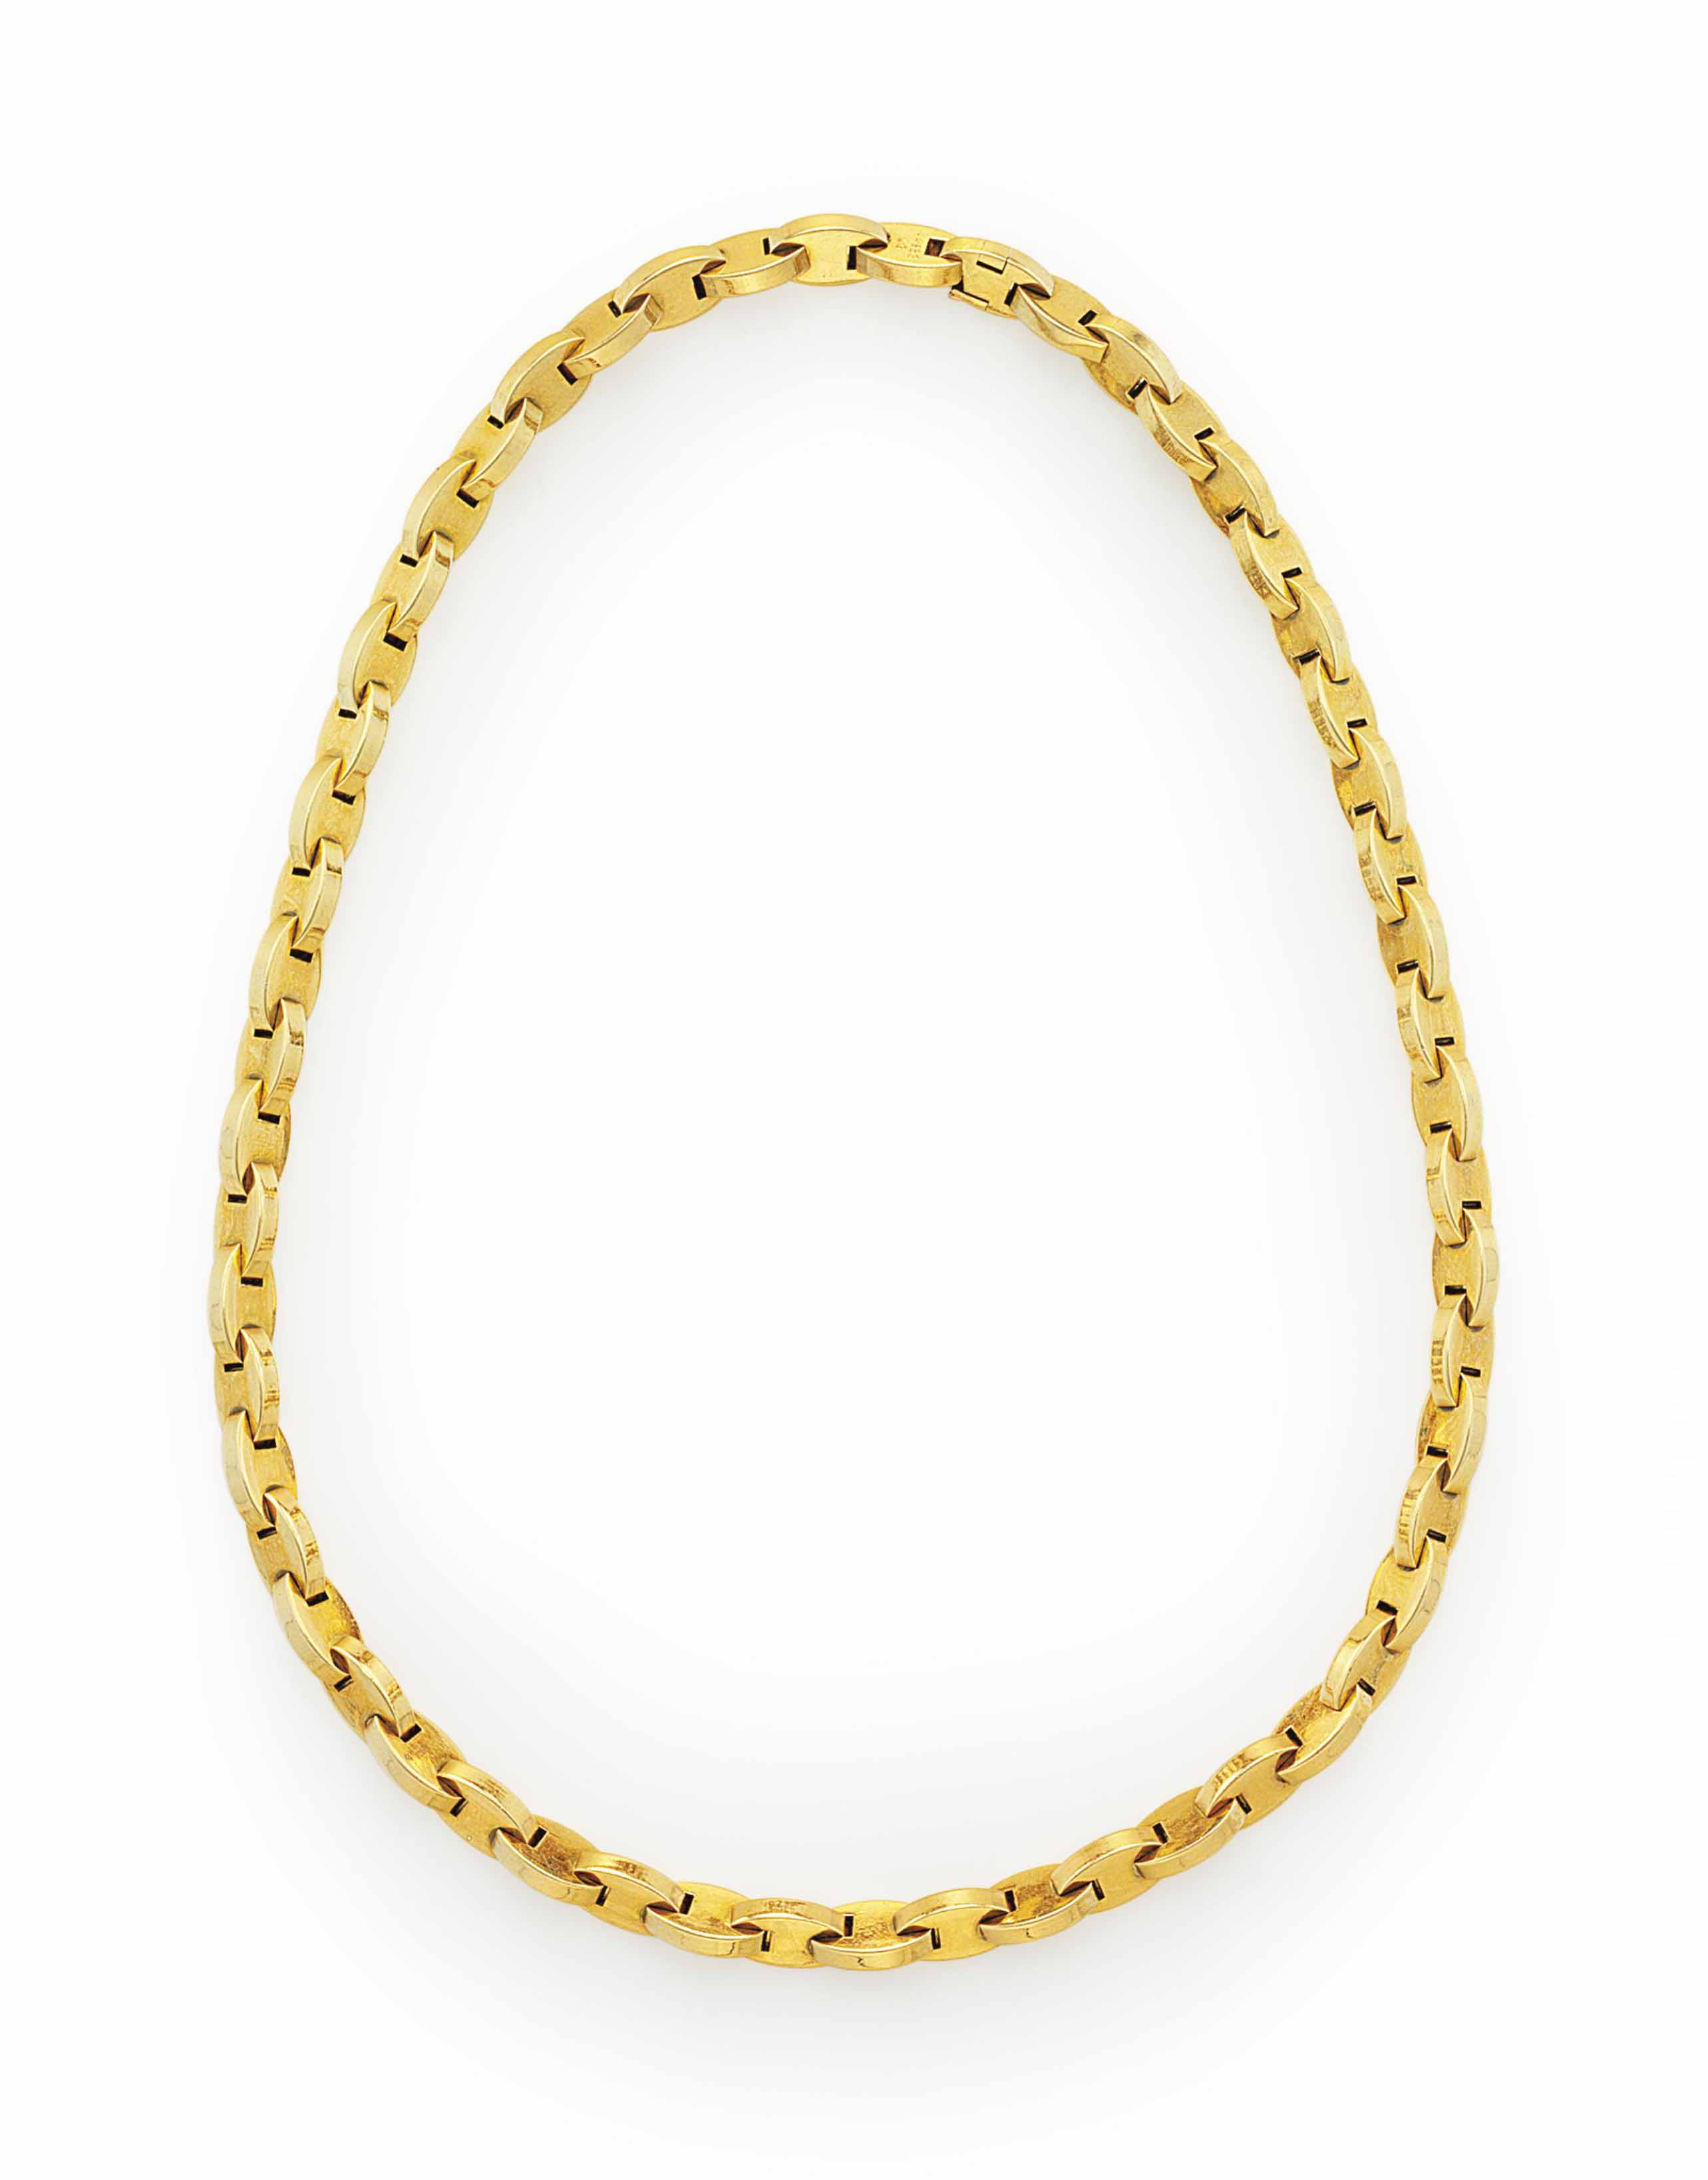 A GOLD NECKLACE, BY HERMÈS